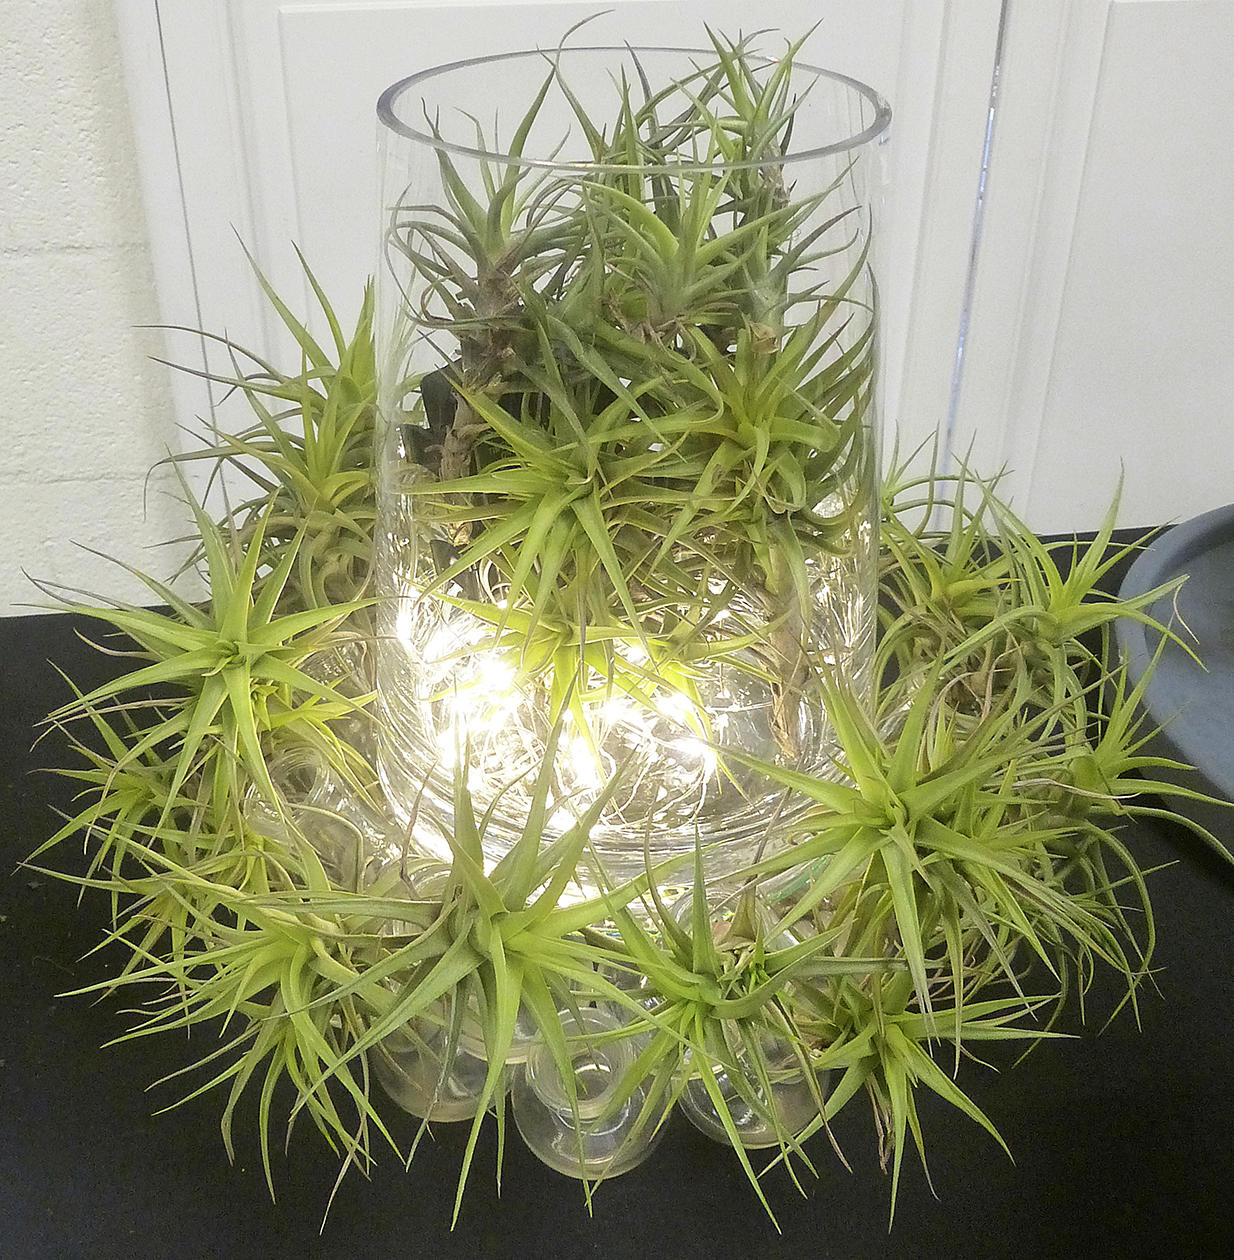 LAGC Inspiration - Airplant